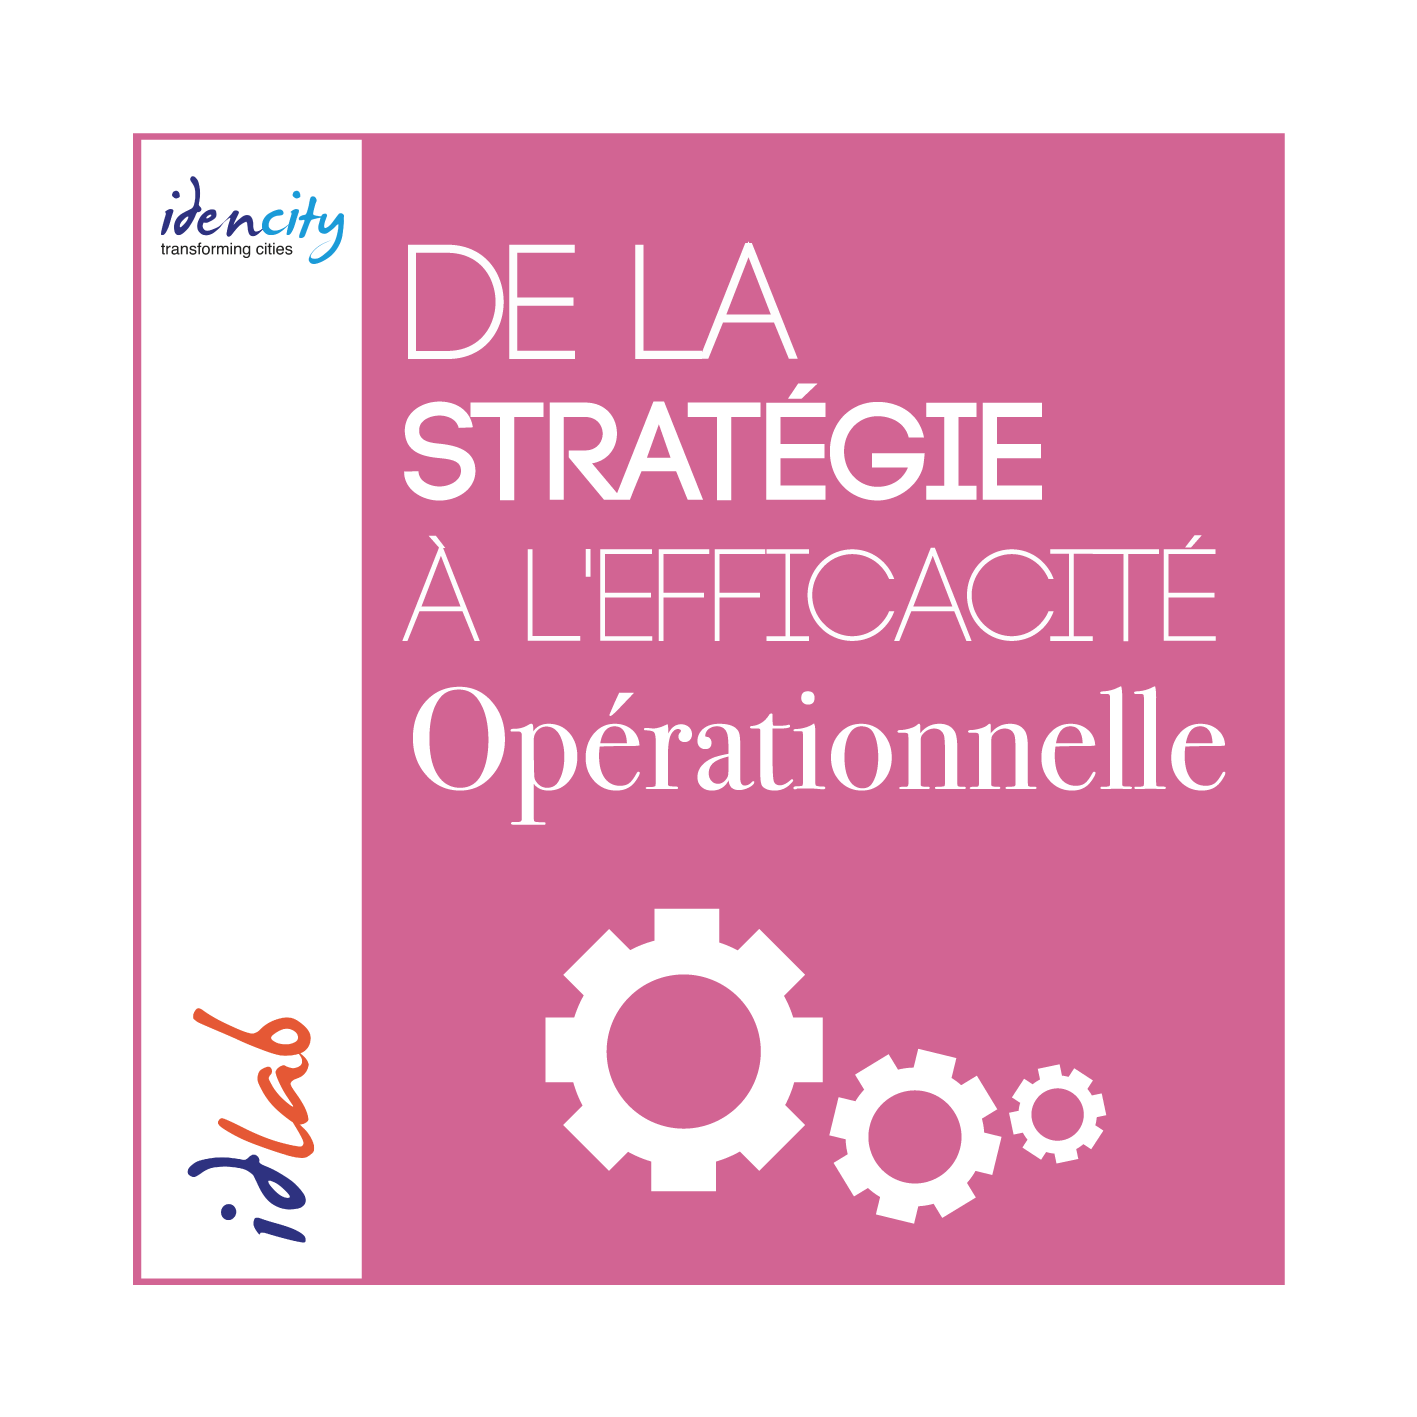 De la strategie a lefficacite opérationnelle - Idencity